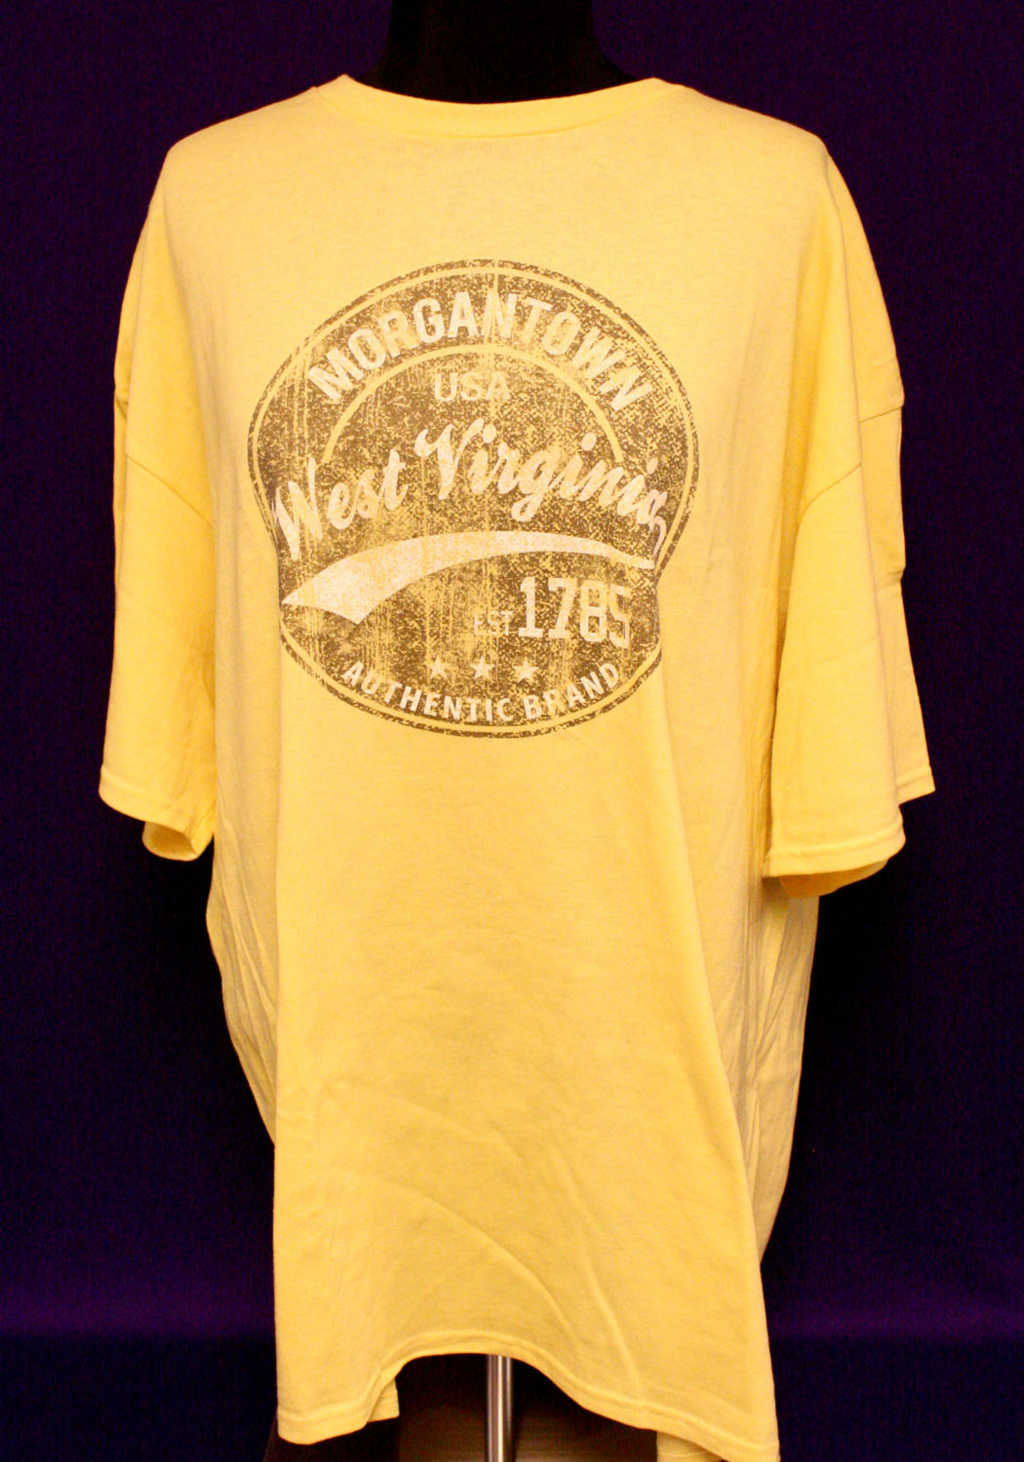 Gold Morgantown West Virginia T-Shirt with circle emblem available at Mon General Hospital Apparel Gift Shop